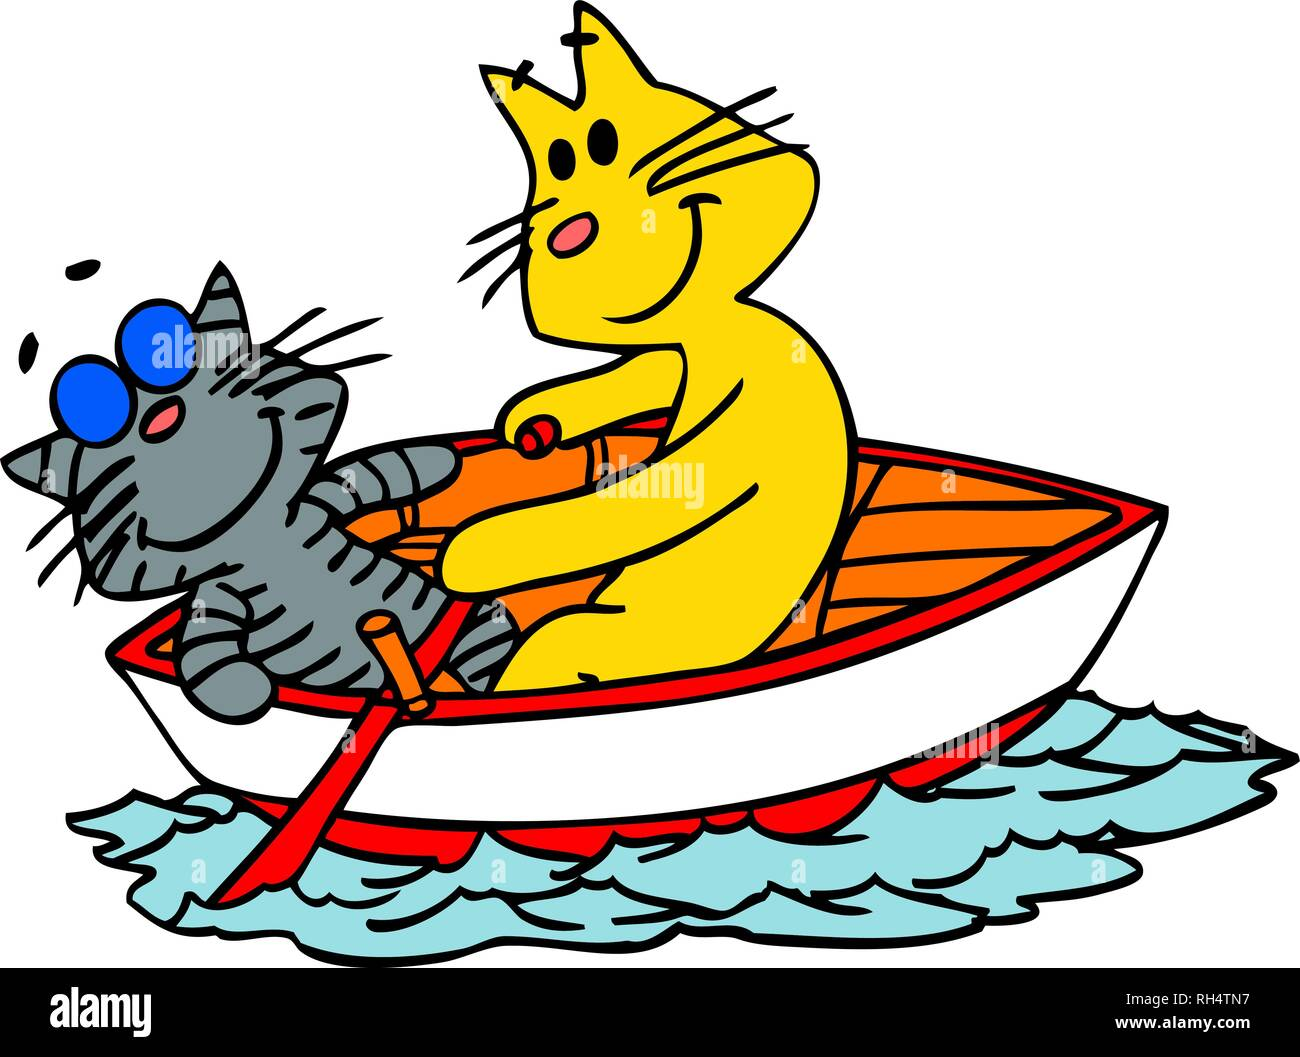 vector illustration of two cartoon cats traveling on a small boat - Stock Image